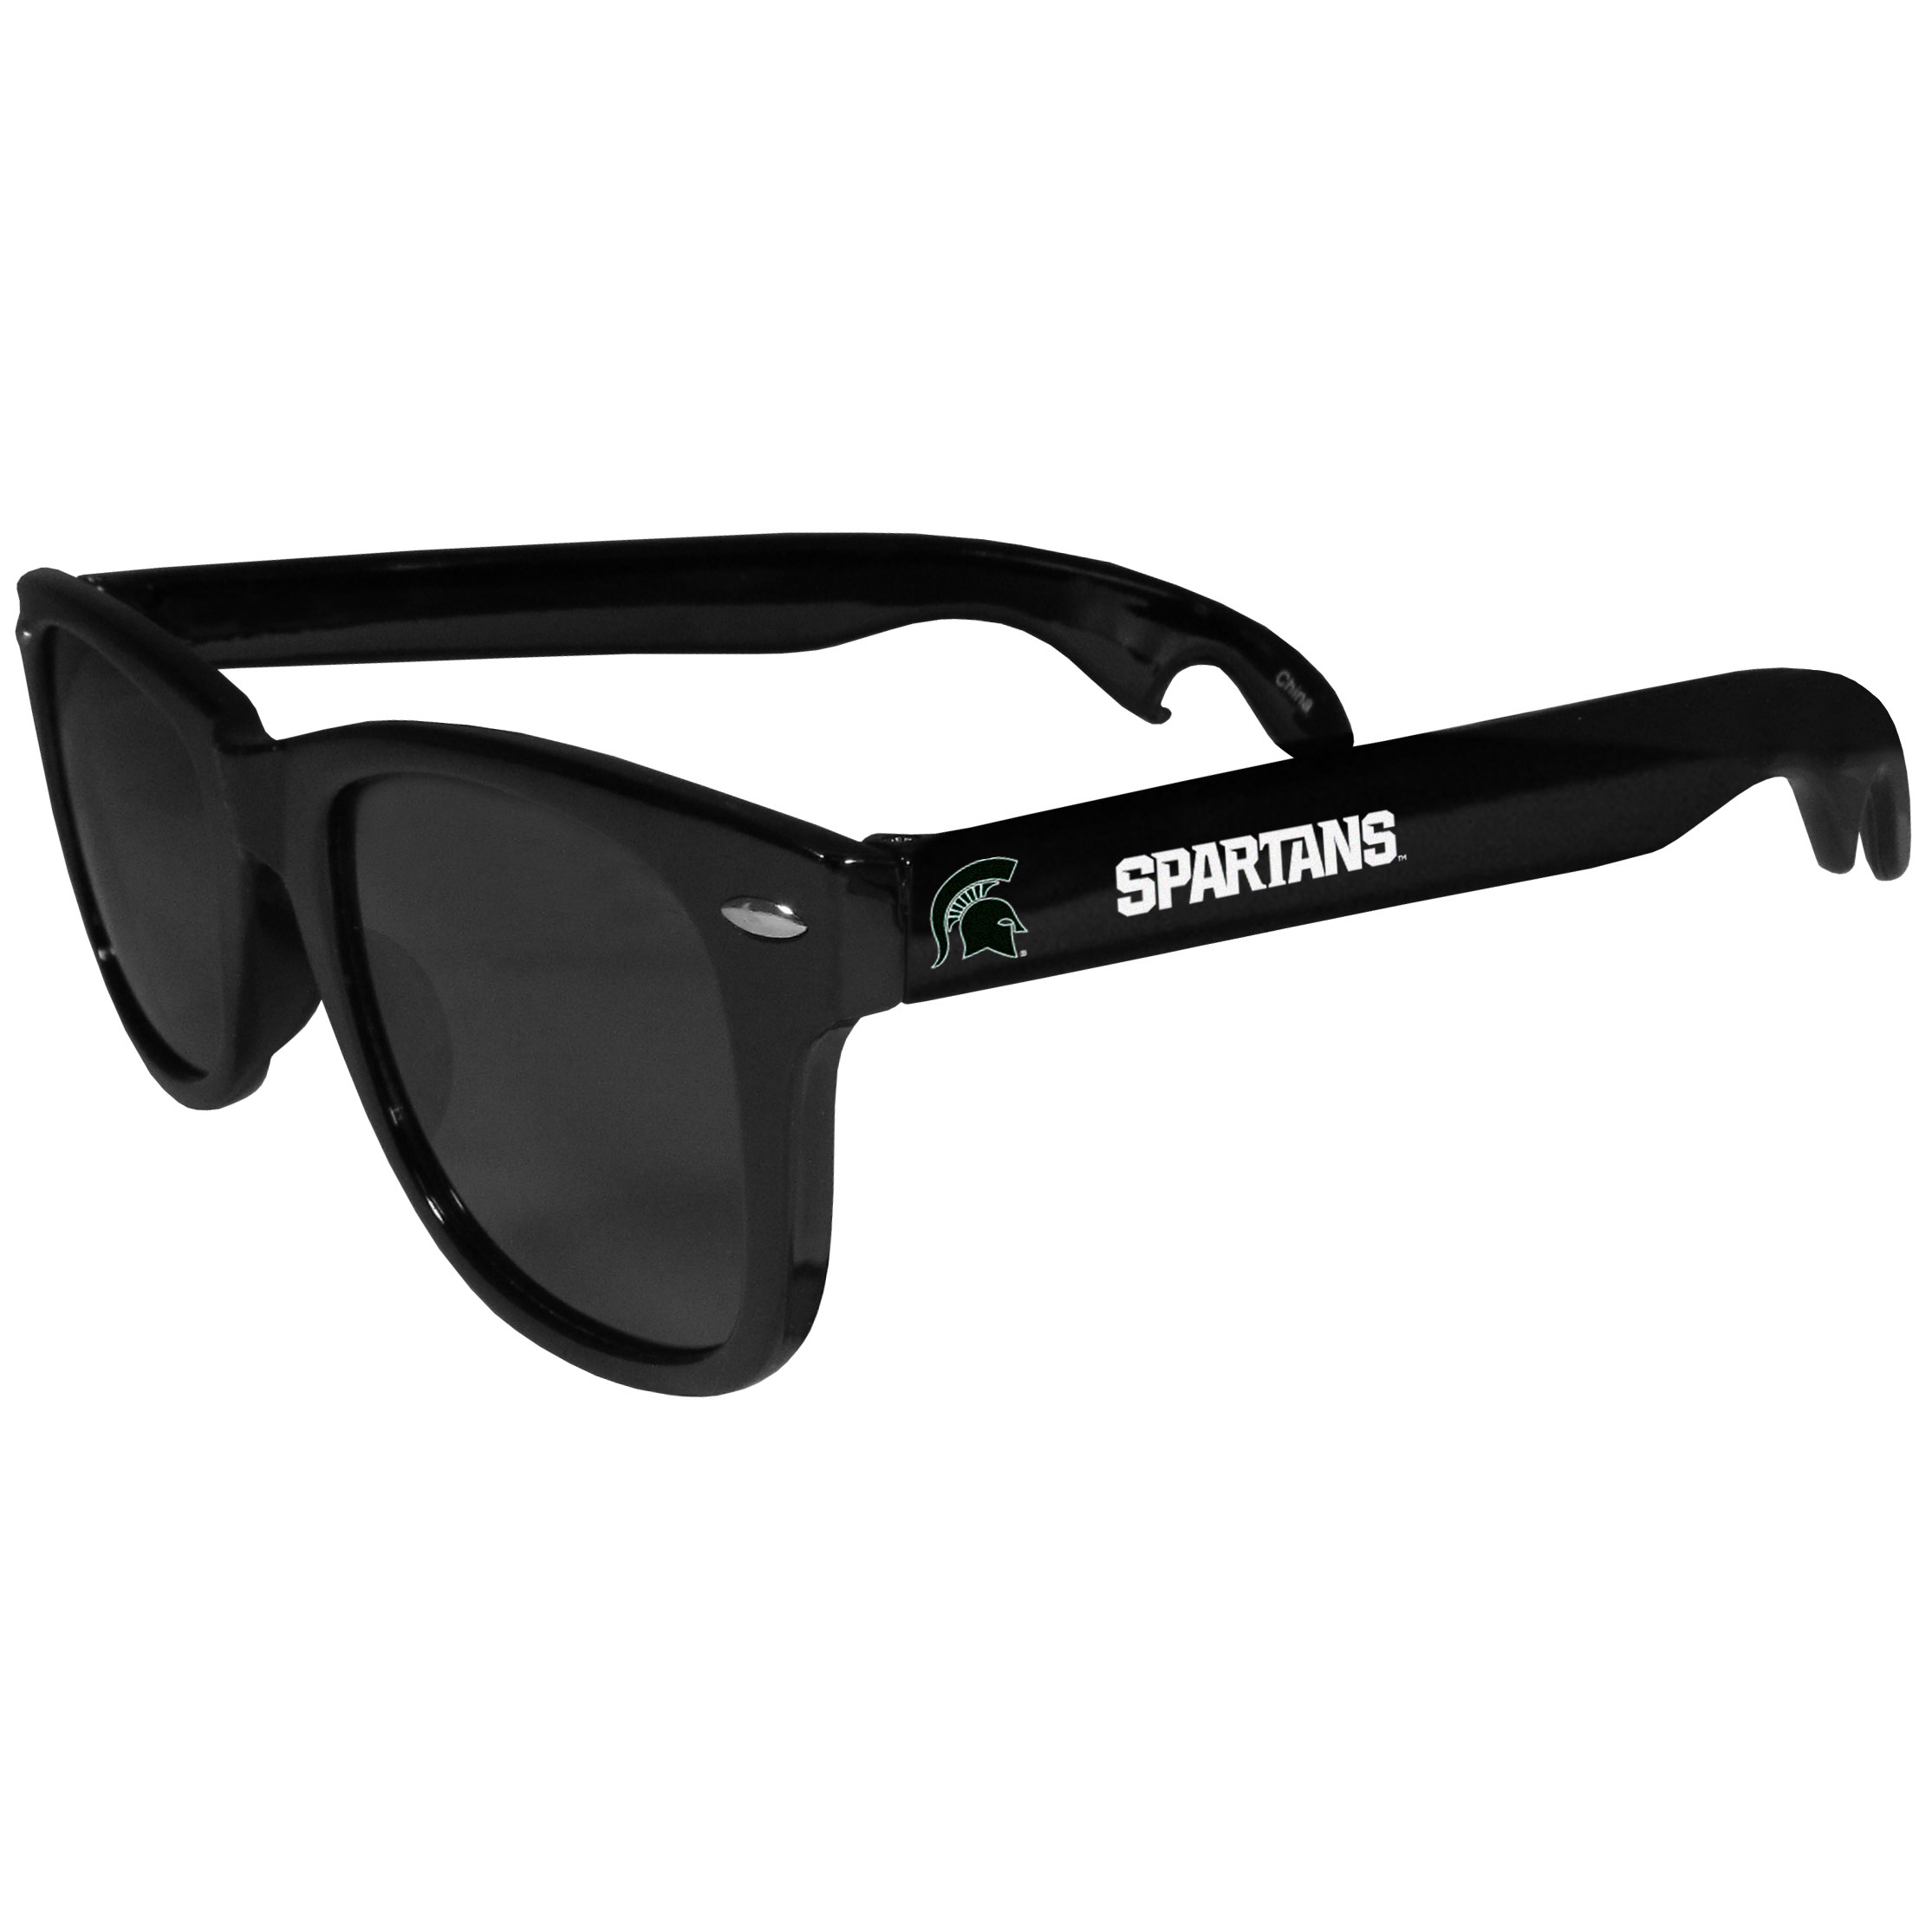 Michigan St. Spartans Beachfarer Bottle Opener Sunglasses - Seriously, these sunglasses open bottles! Keep the party going with these amazing Michigan St. Spartans bottle opener sunglasses. The stylish retro frames feature team designs on the arms and functional bottle openers on the end of the arms. Whether you are at the beach or having a backyard BBQ on game day, these shades will keep your eyes protected with 100% UVA/UVB protection and keep you hydrated with the handy bottle opener arms.